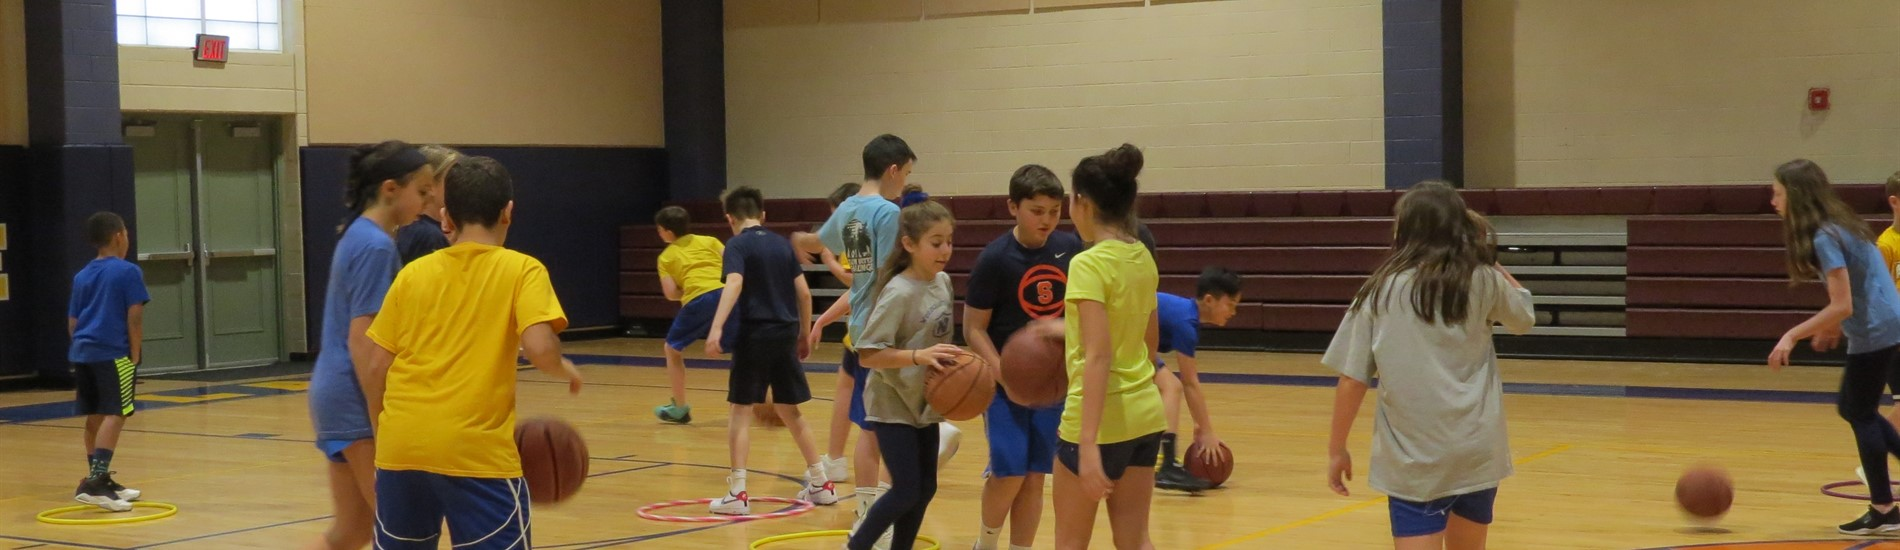 6th grade physical education class